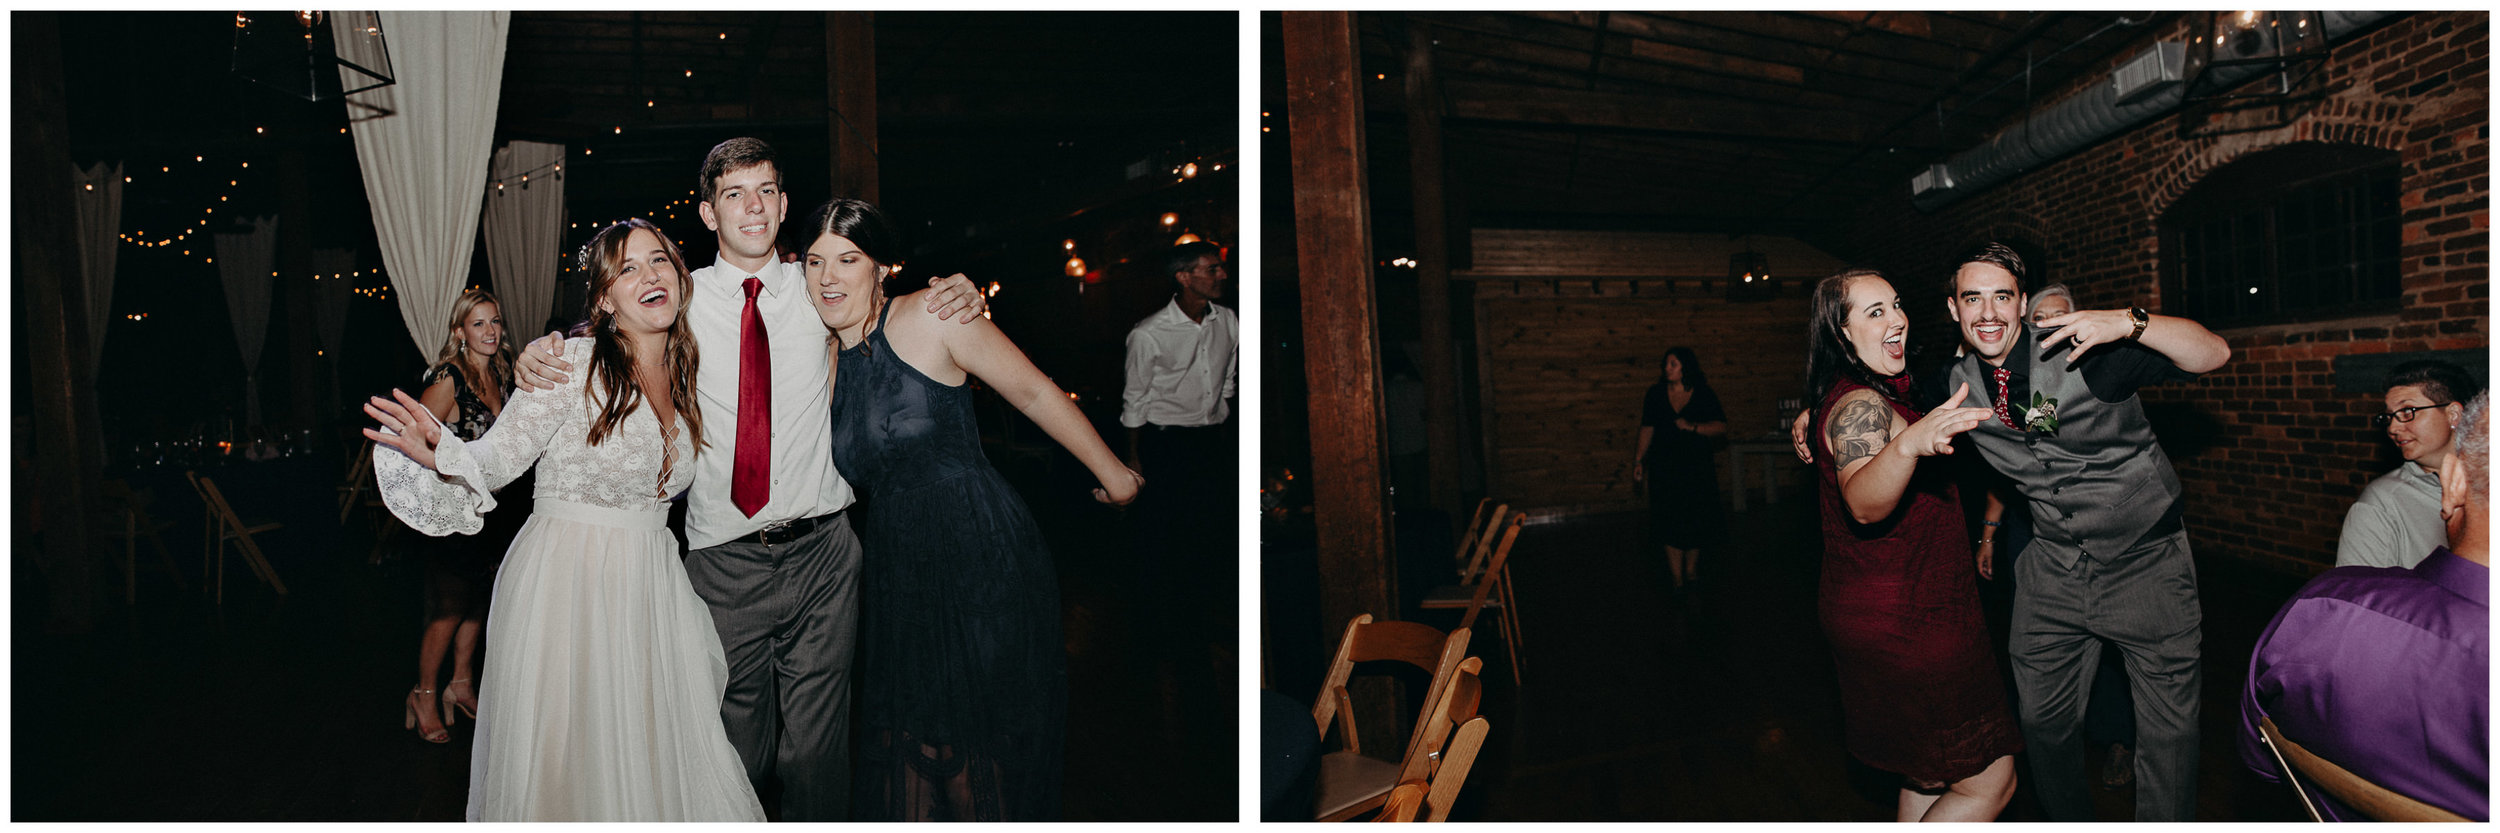 163 - Bride and groom : Dancing: Details : Toasts wedding - Atlanta wedding photographer.JPG